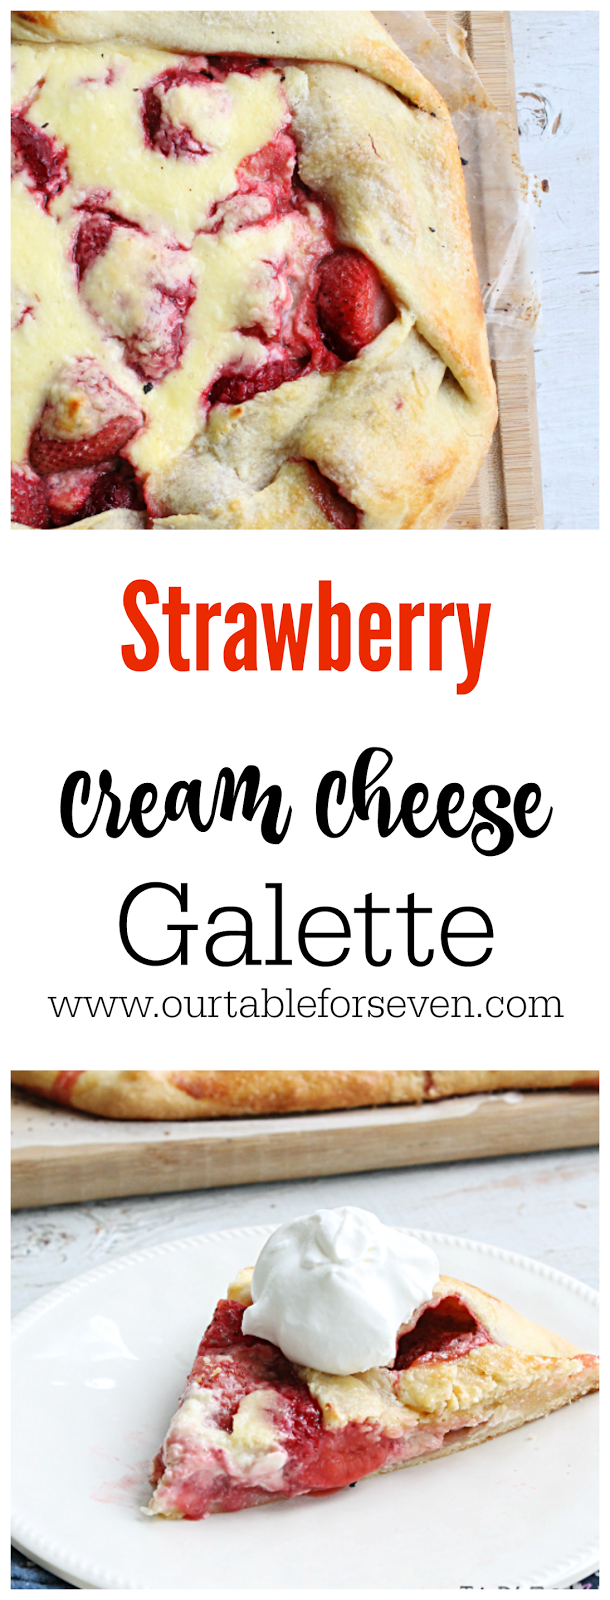 Strawberry Cream Cheese Galette